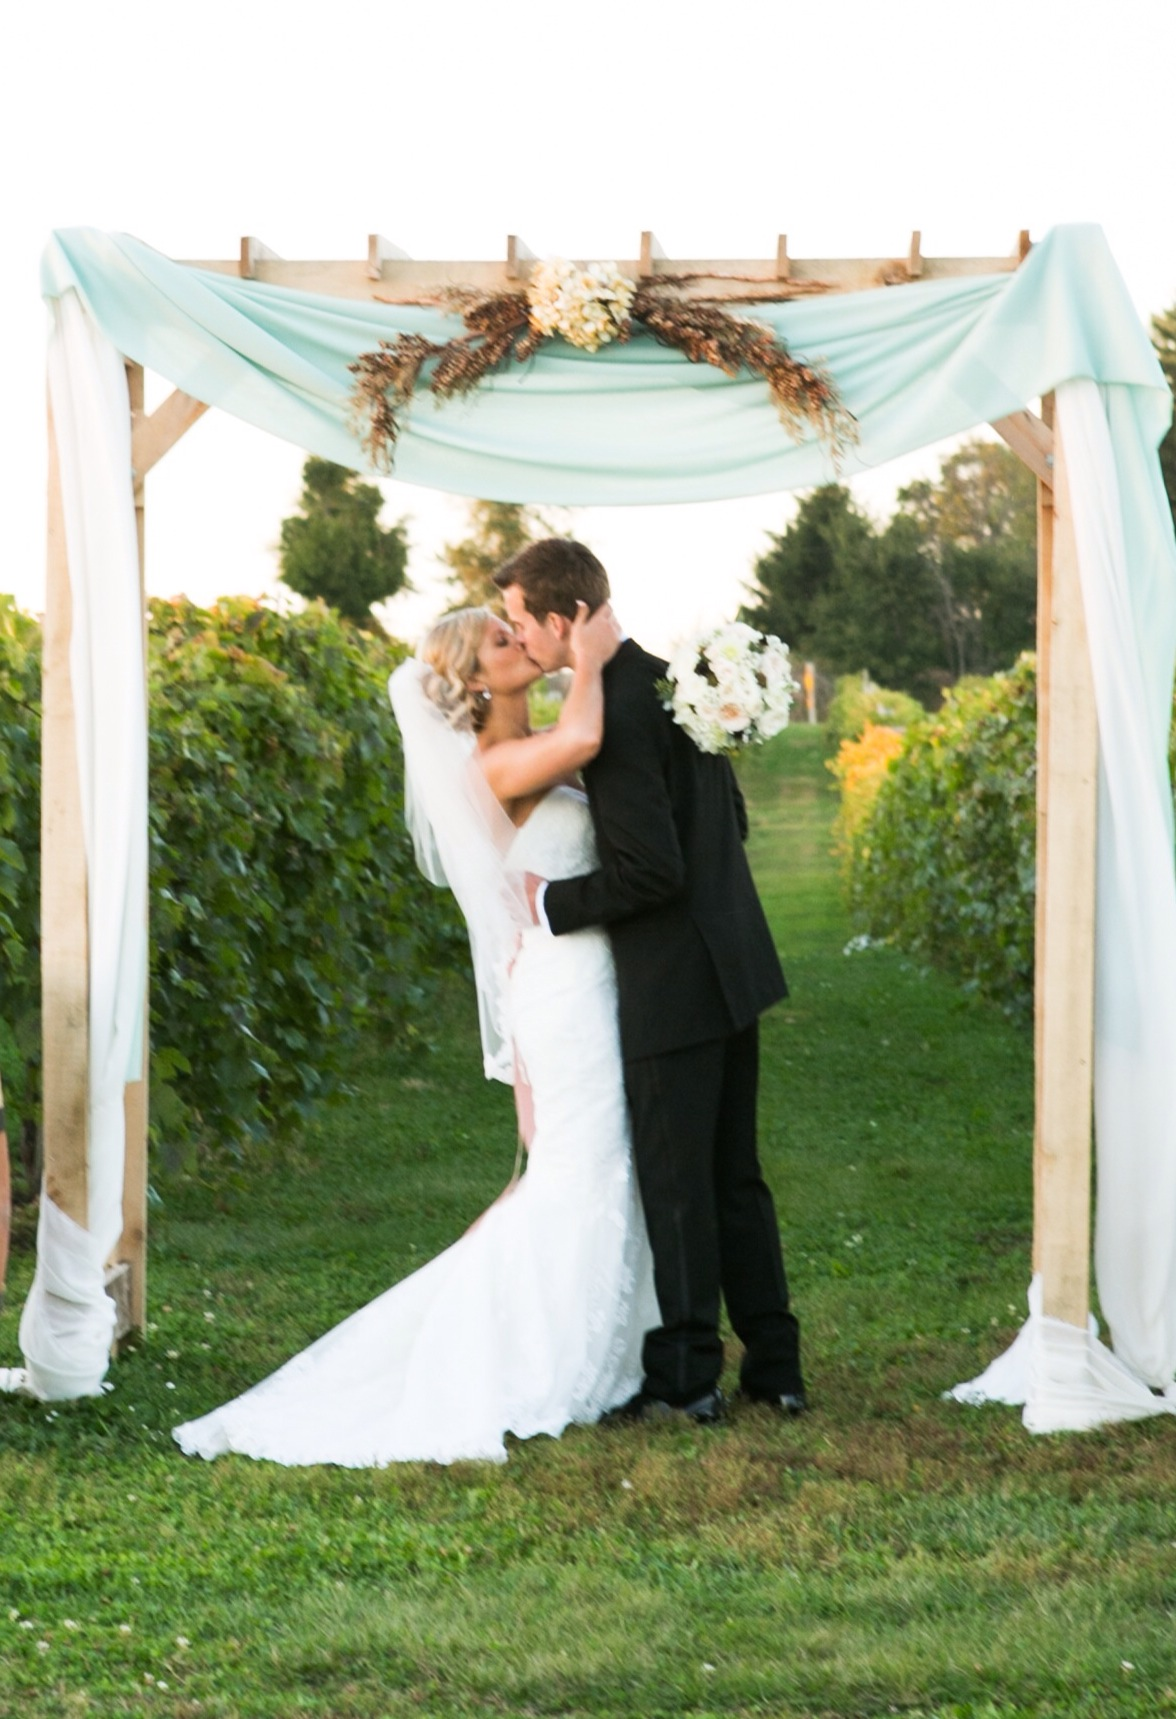 Acquaviva Winery, Maple Park, will be CLOSED for a wedding